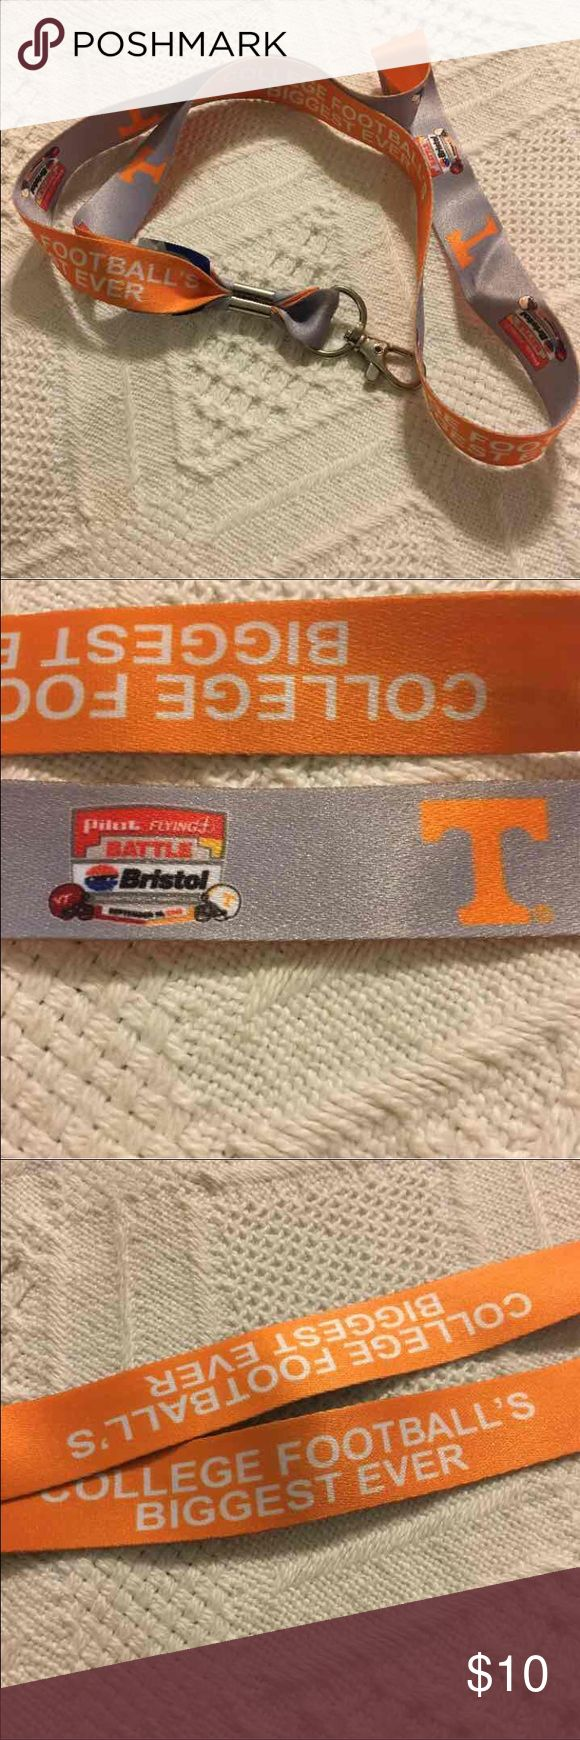 Tennessee Volunteers Battle at Bristol Lanyard NEW Tennessee Volunteers Battle at Bristol Lanyard.  Brand new.  Commemorative lanyard from college football's largest football game ever. Game played at Bristol Motor Speedway between University of Tennessee Volunteers and Virginia Tech Hokies. Accessories Key & Card Holders